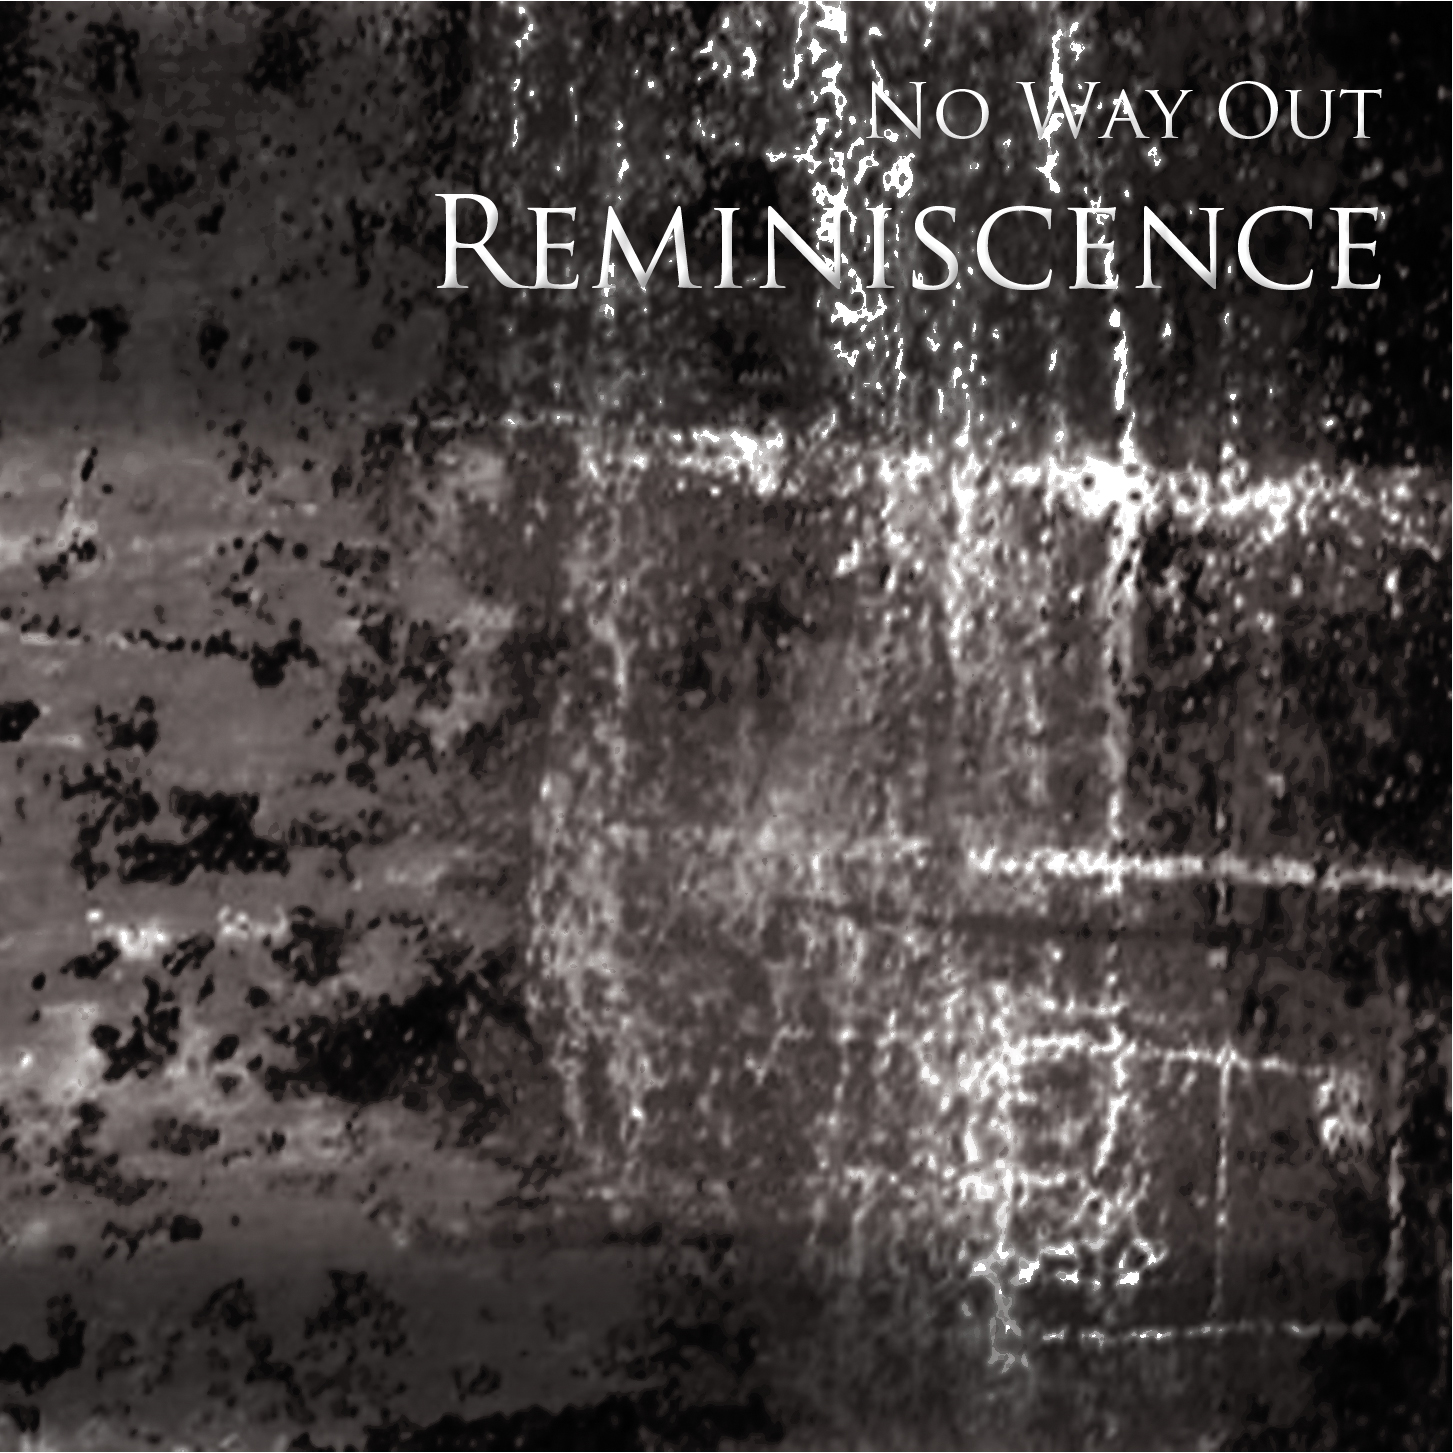 https://ia801700.us.archive.org/9/items/petroglyph086NoWayOut-Reminiscence/00_-_No_Way_Out_-_Reminiscence_-_Image_1_Front.jpg